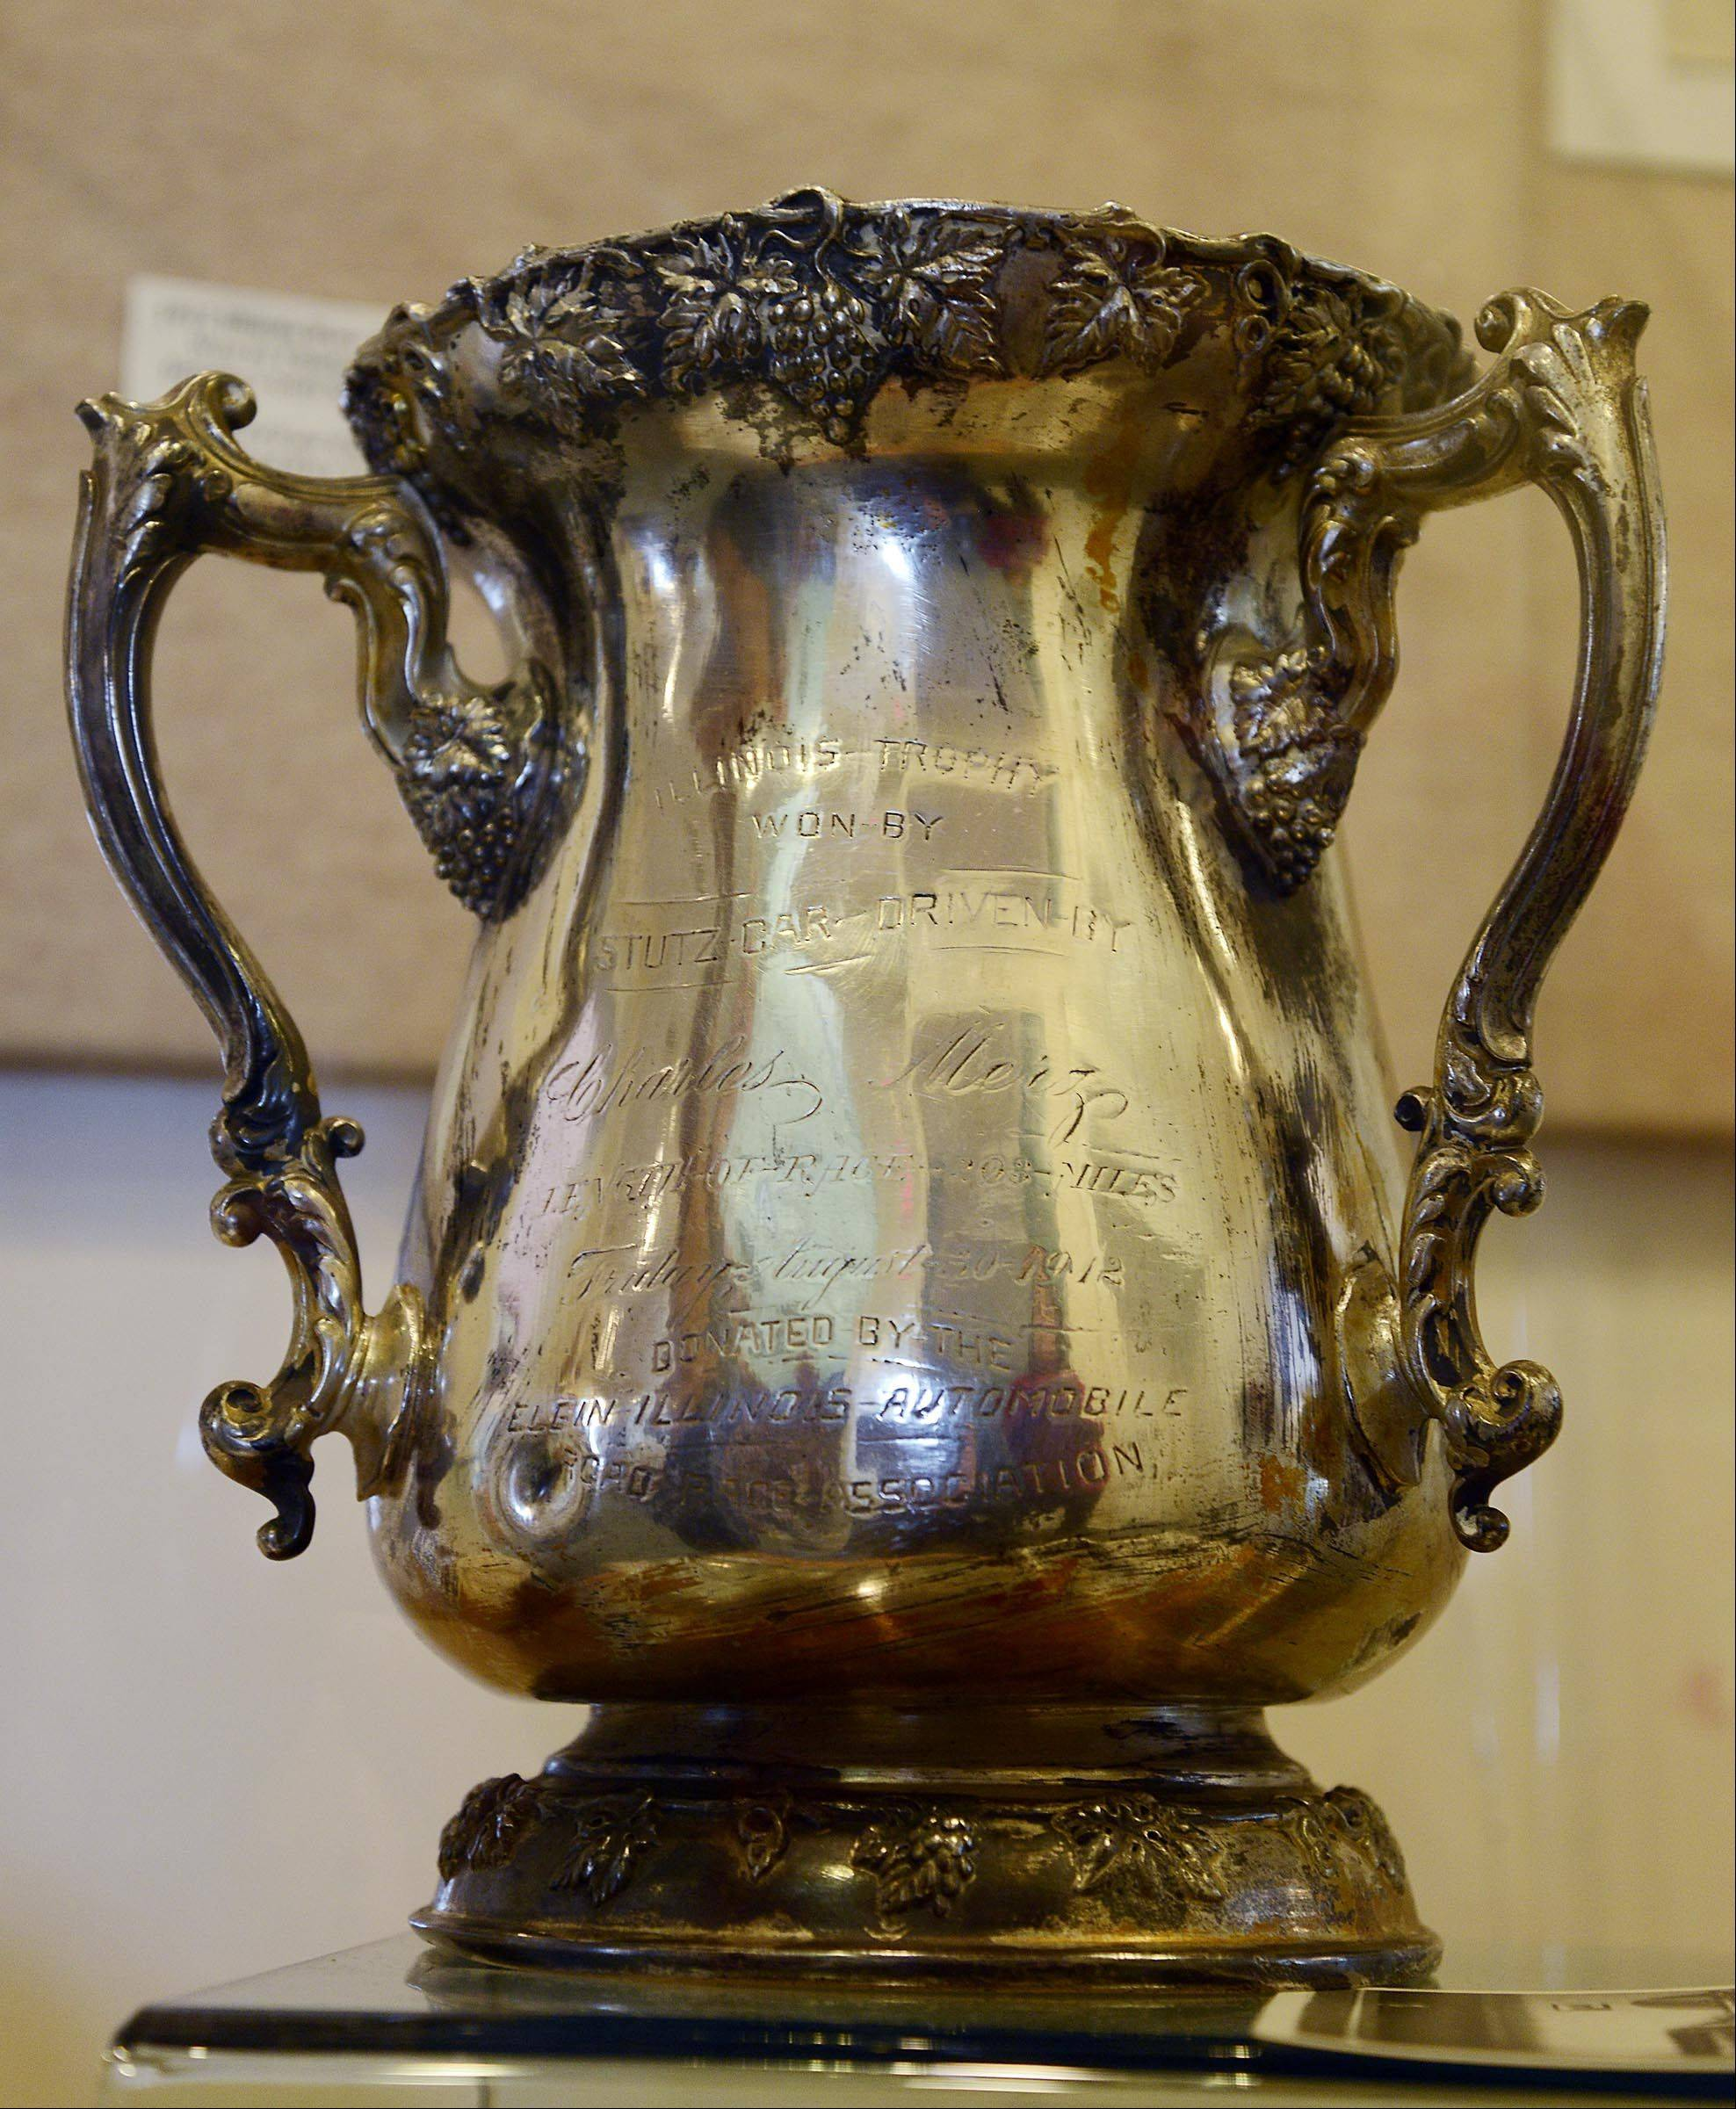 The large silver trophy, known as the Illinois Cup, won by Charles Merz in the 1912 Elgin National Road Race is now in the Elgin History Museum, thanks in part to Maurice Dyer, Elgin Historical Society board member.